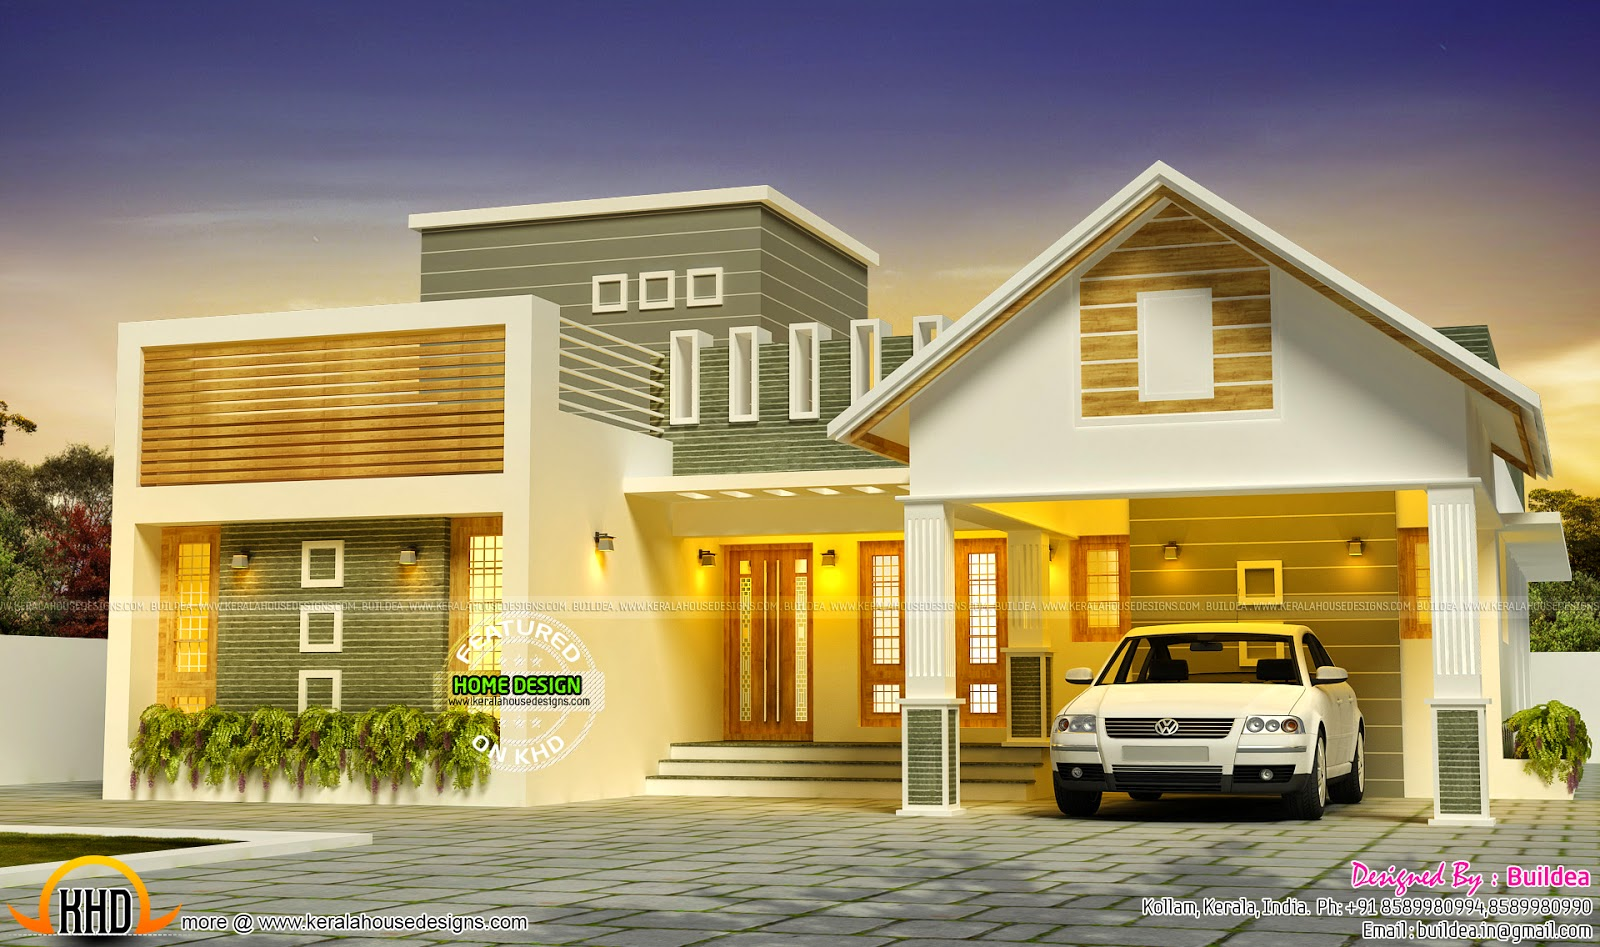 Awesome dream home design kerala home design and floor plans for Dream home plans